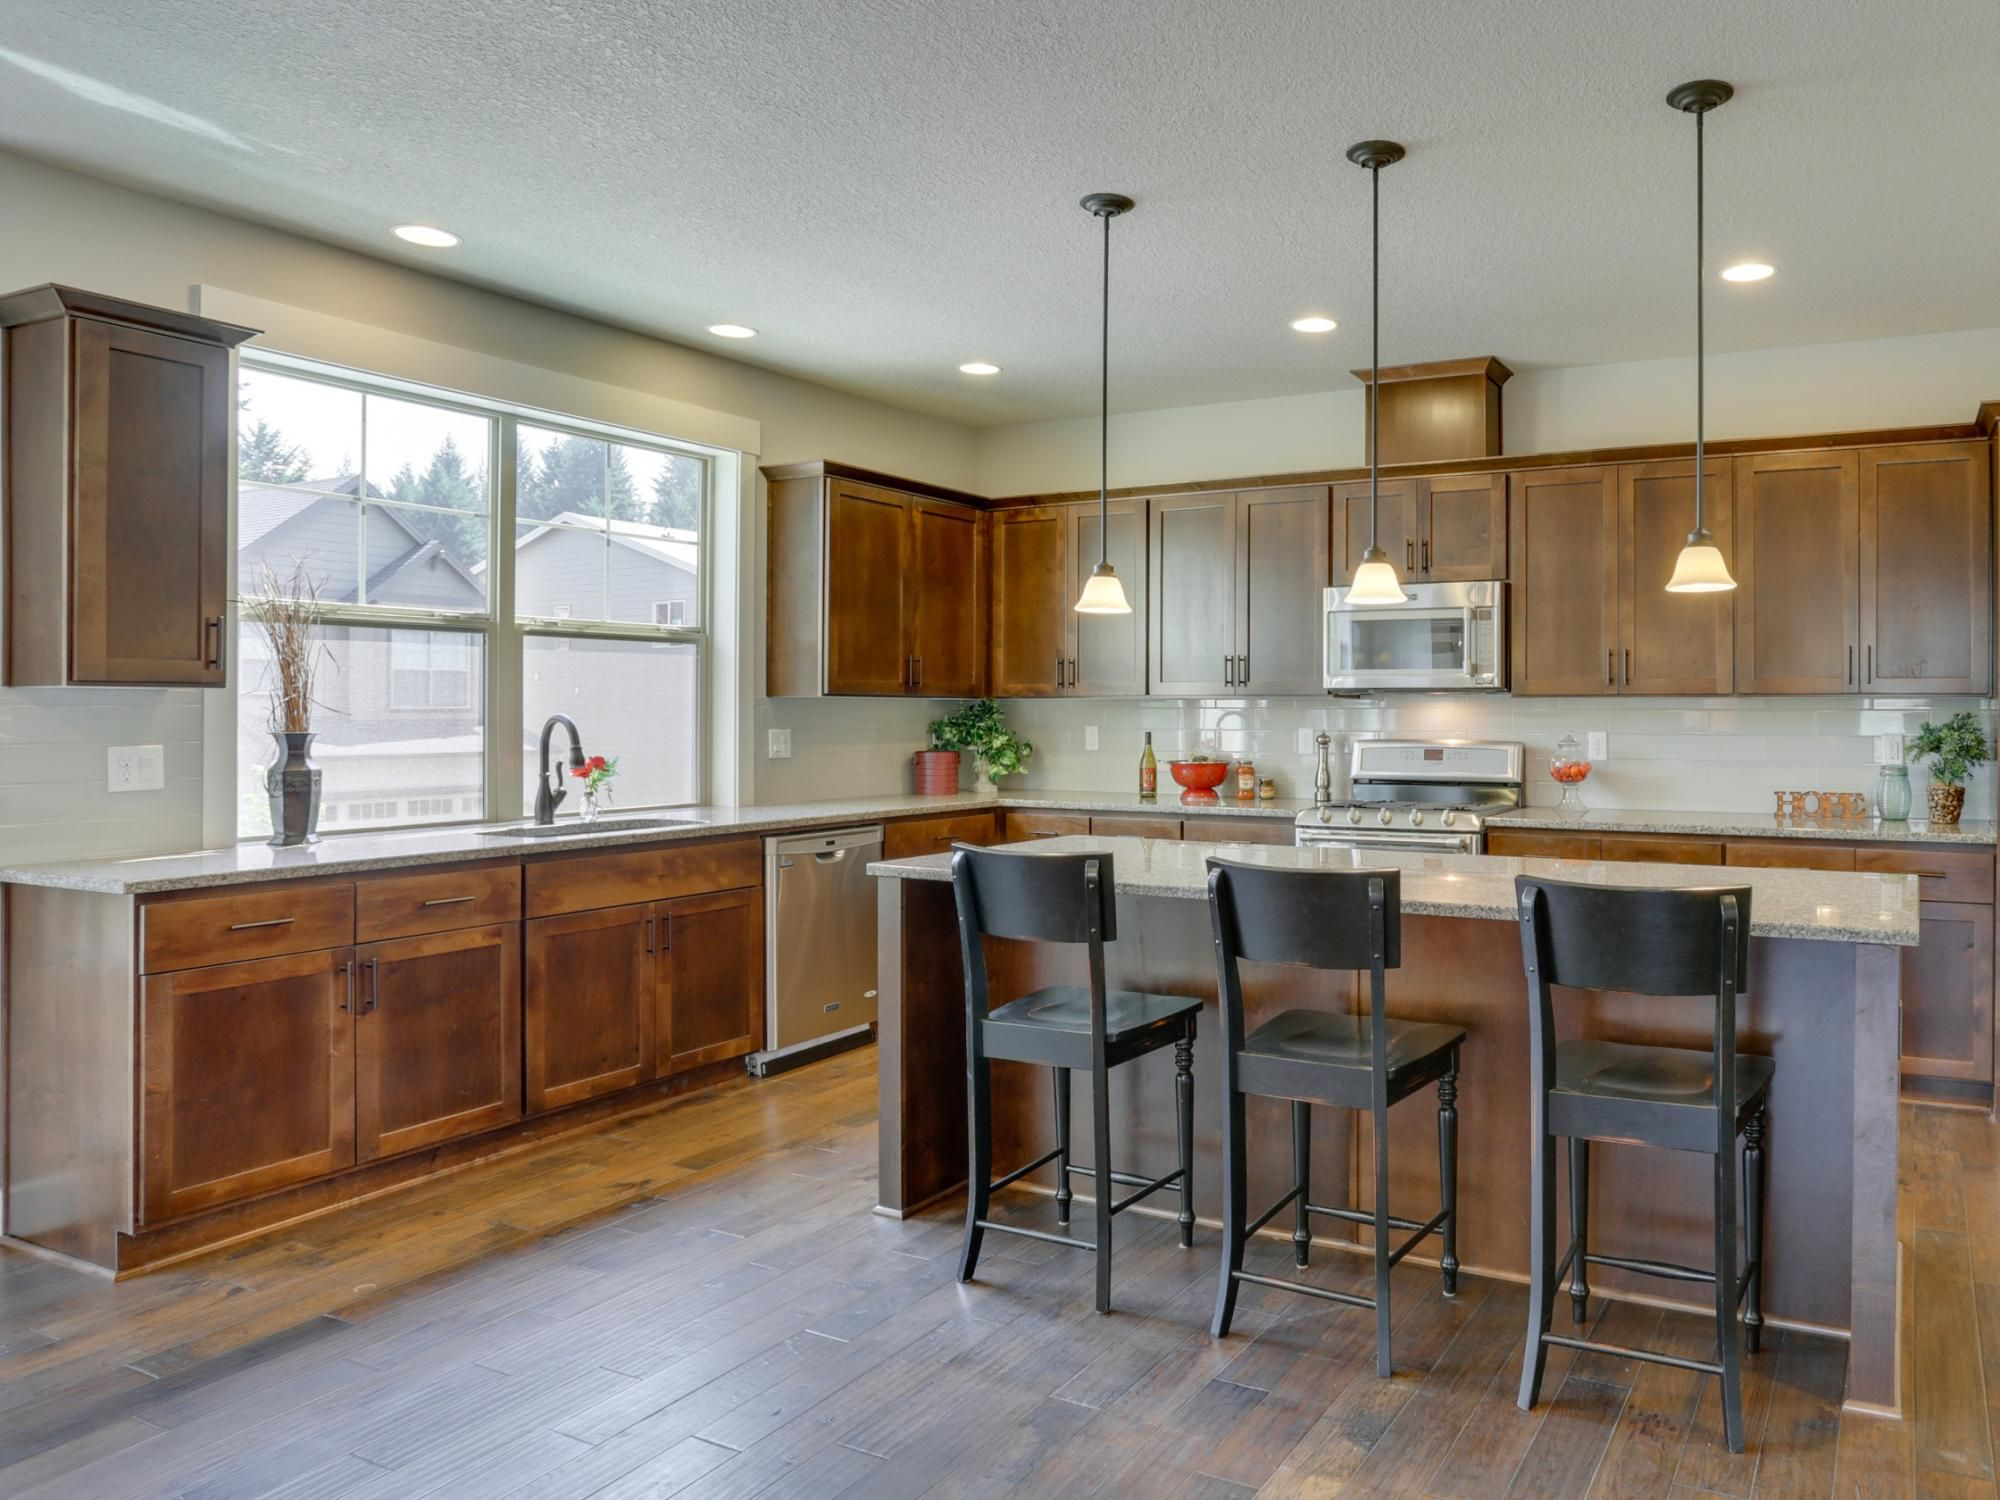 Kitchen with shaker style maple cabinetry, quartz ... on Maple Kitchen Cabinets With Quartz Countertops  id=33851